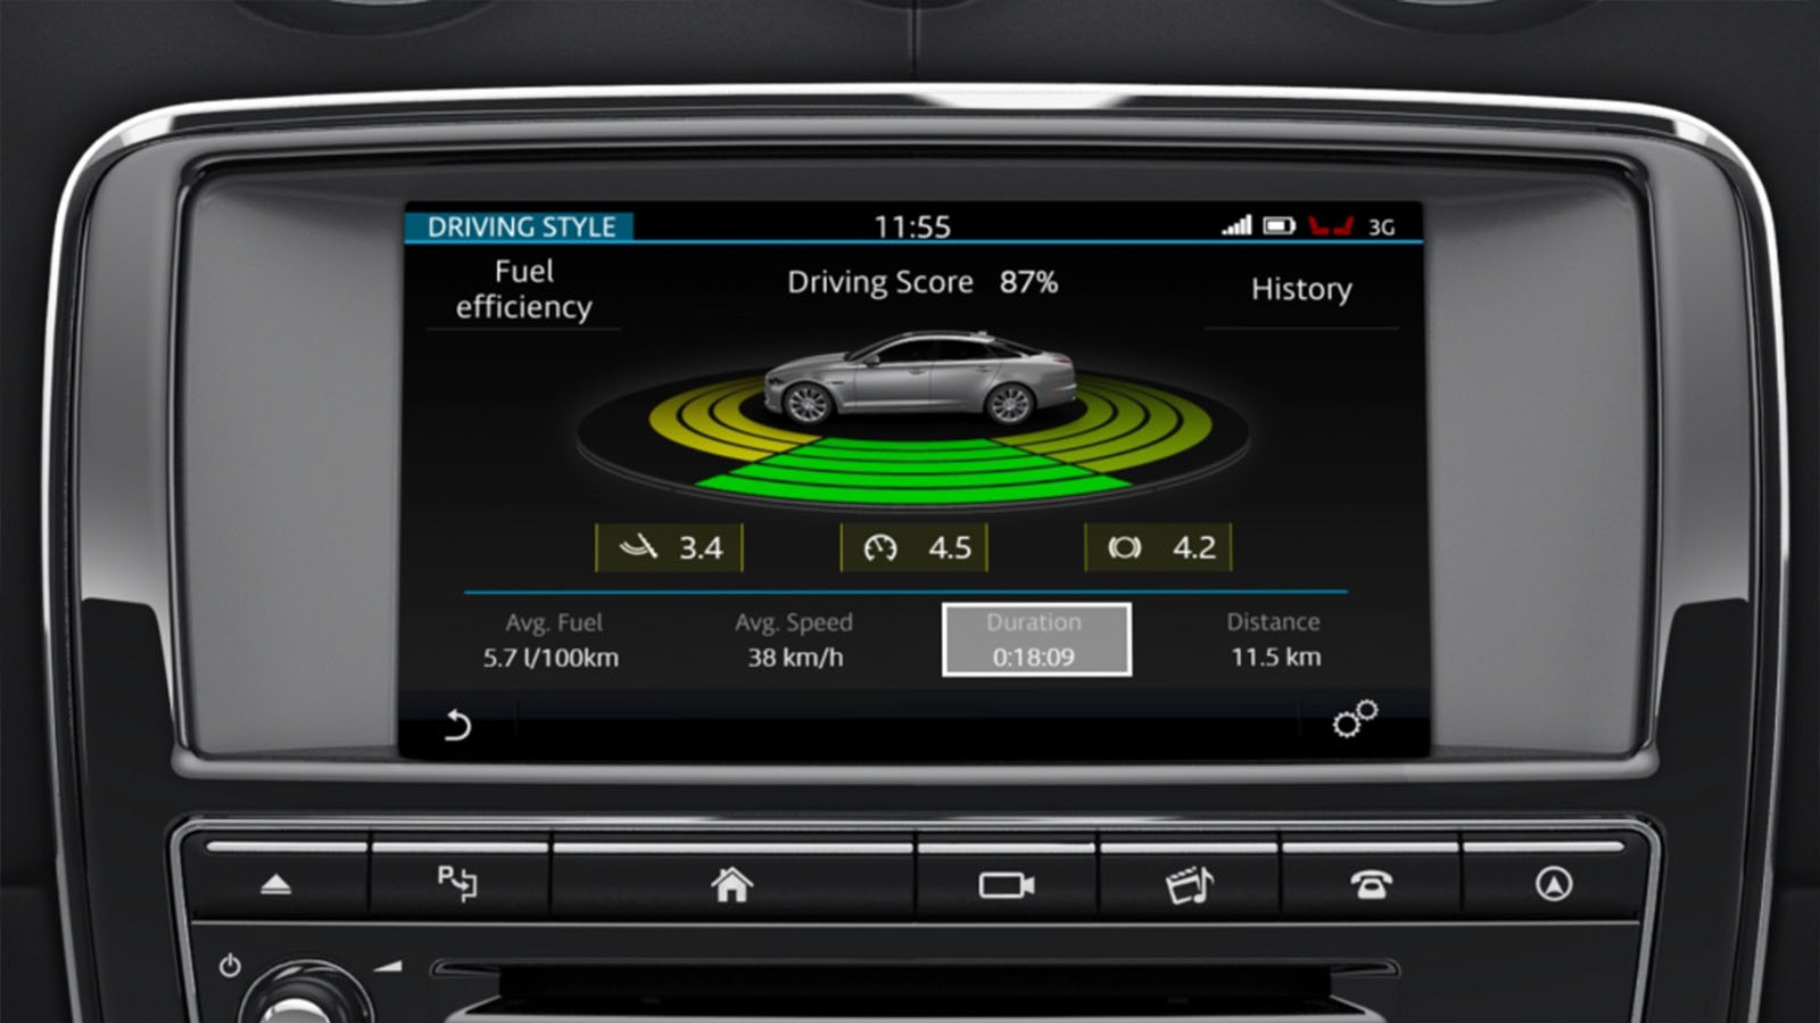 Jaguar InControl Touch Pro: Eco Data on the infotainment Touchscreen.